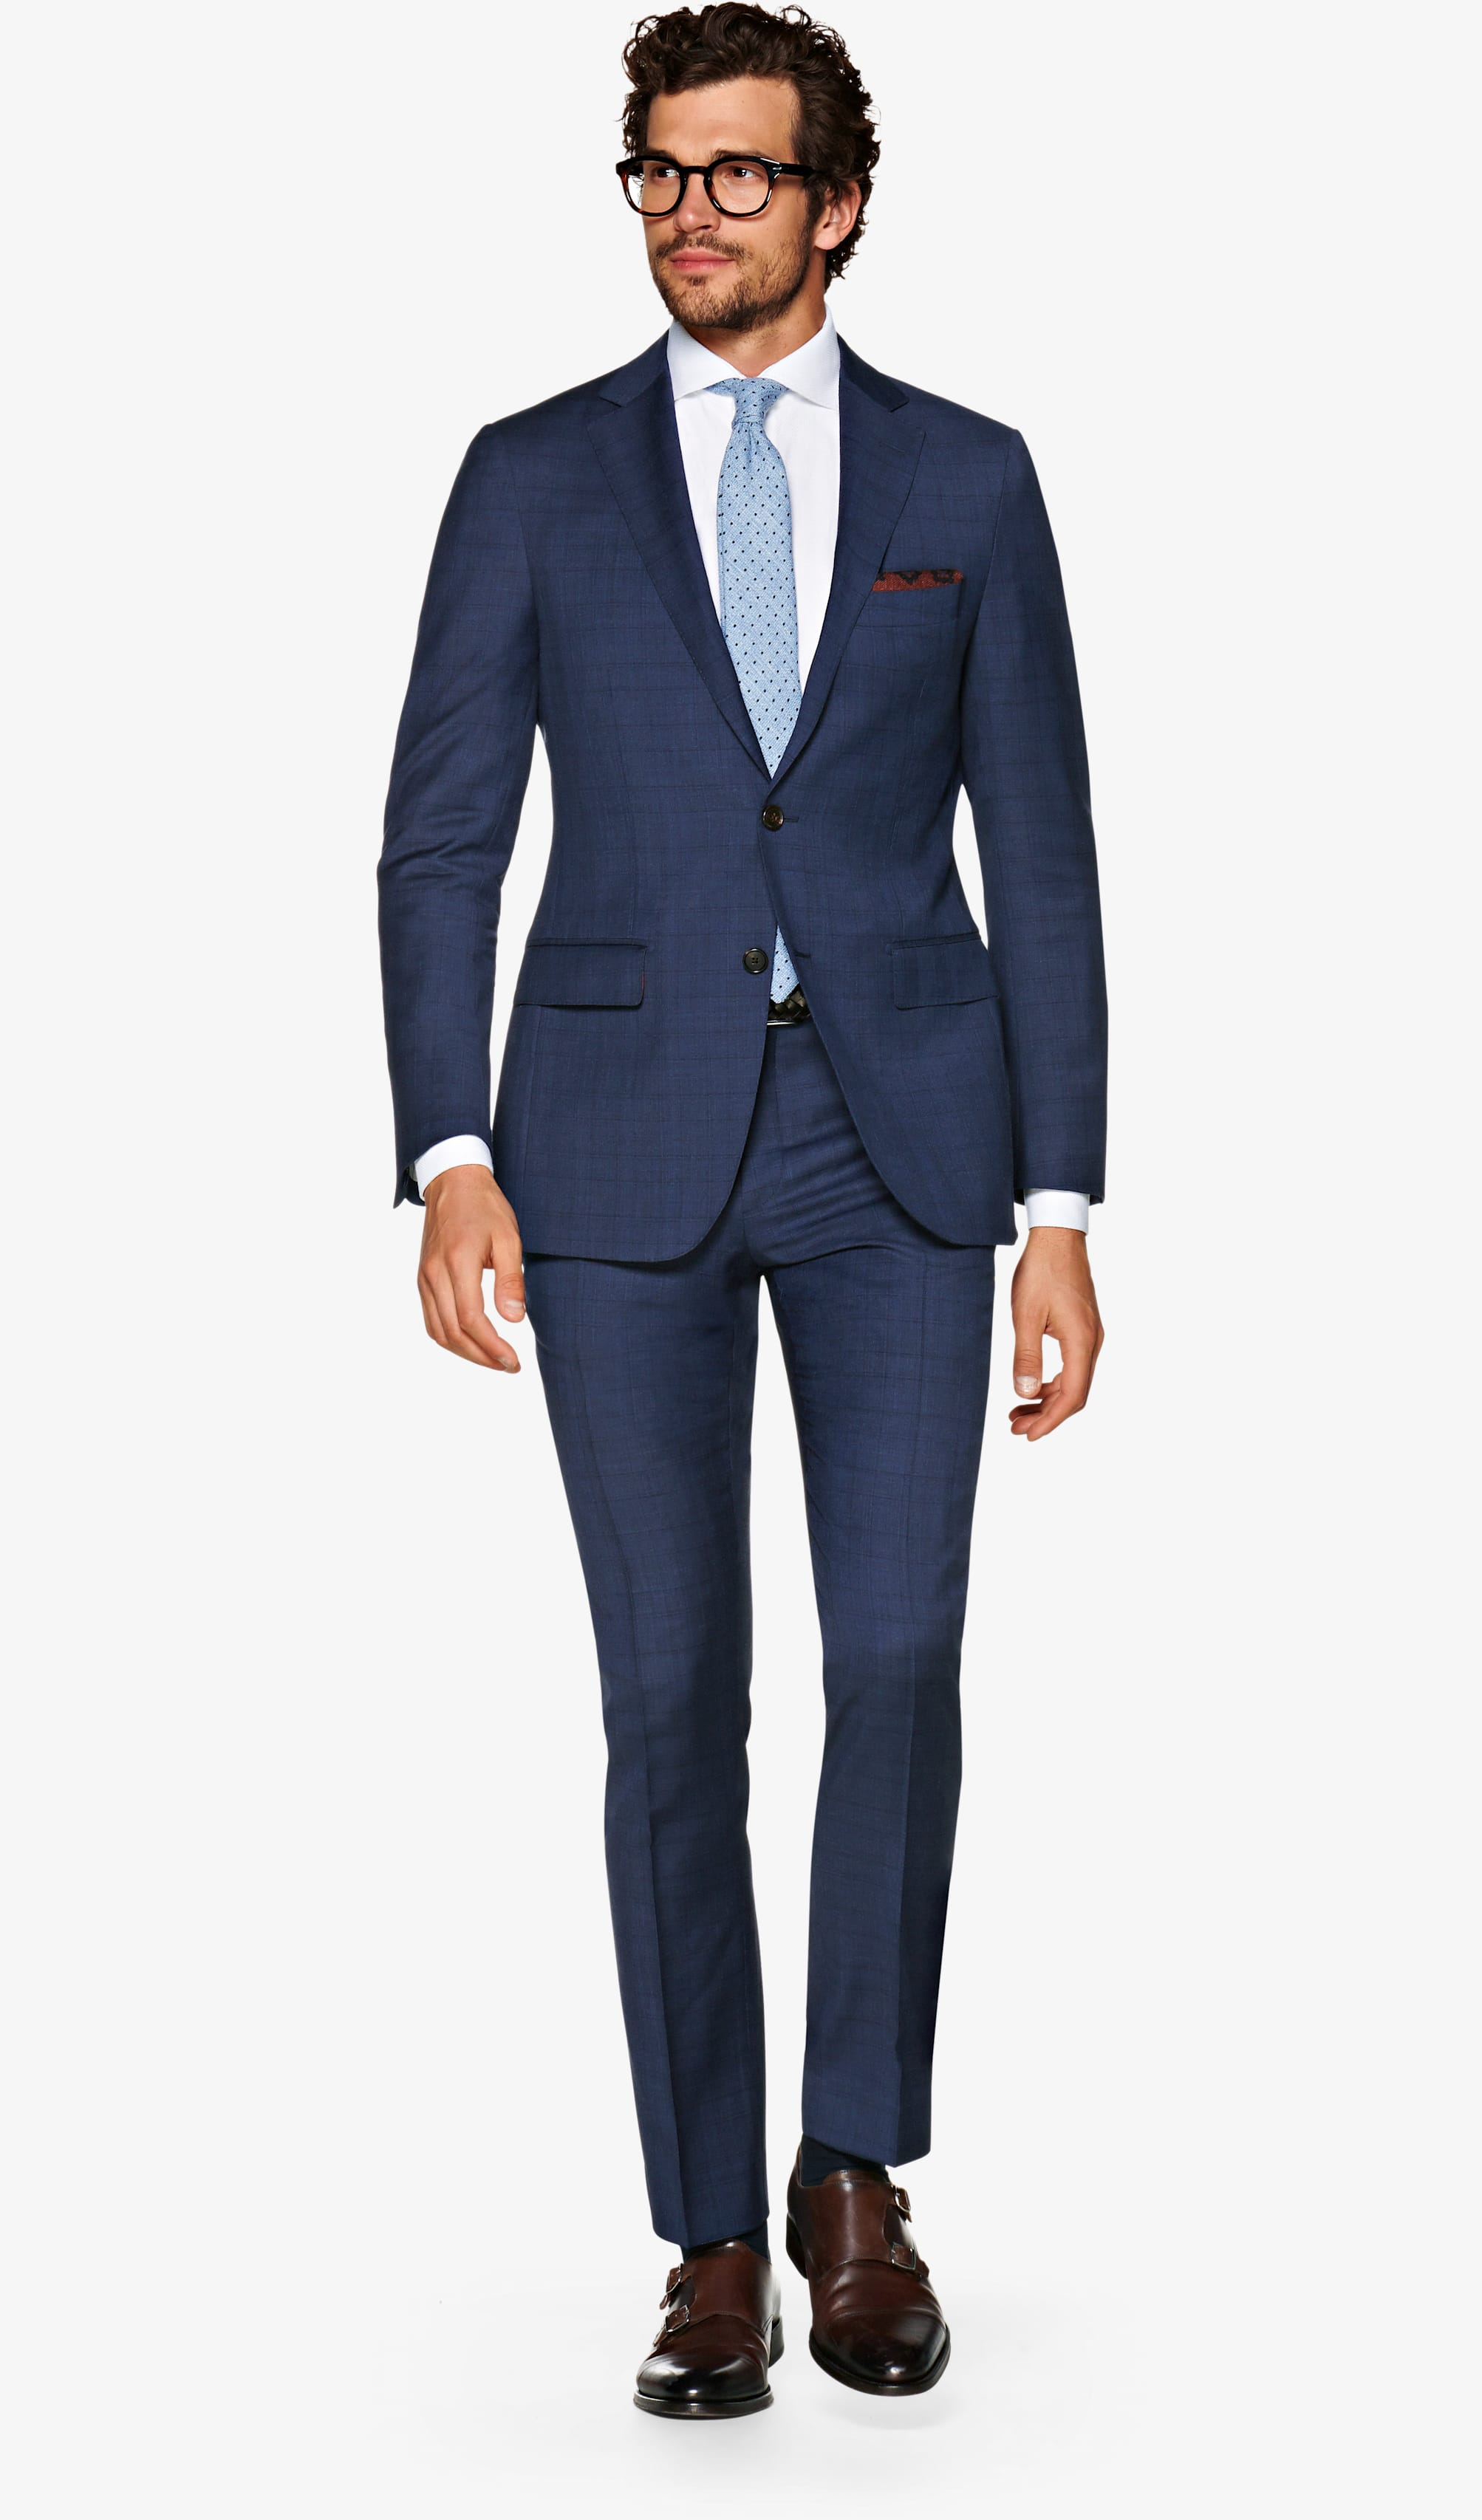 Suit_Blue_Check_Sienna_P5505I